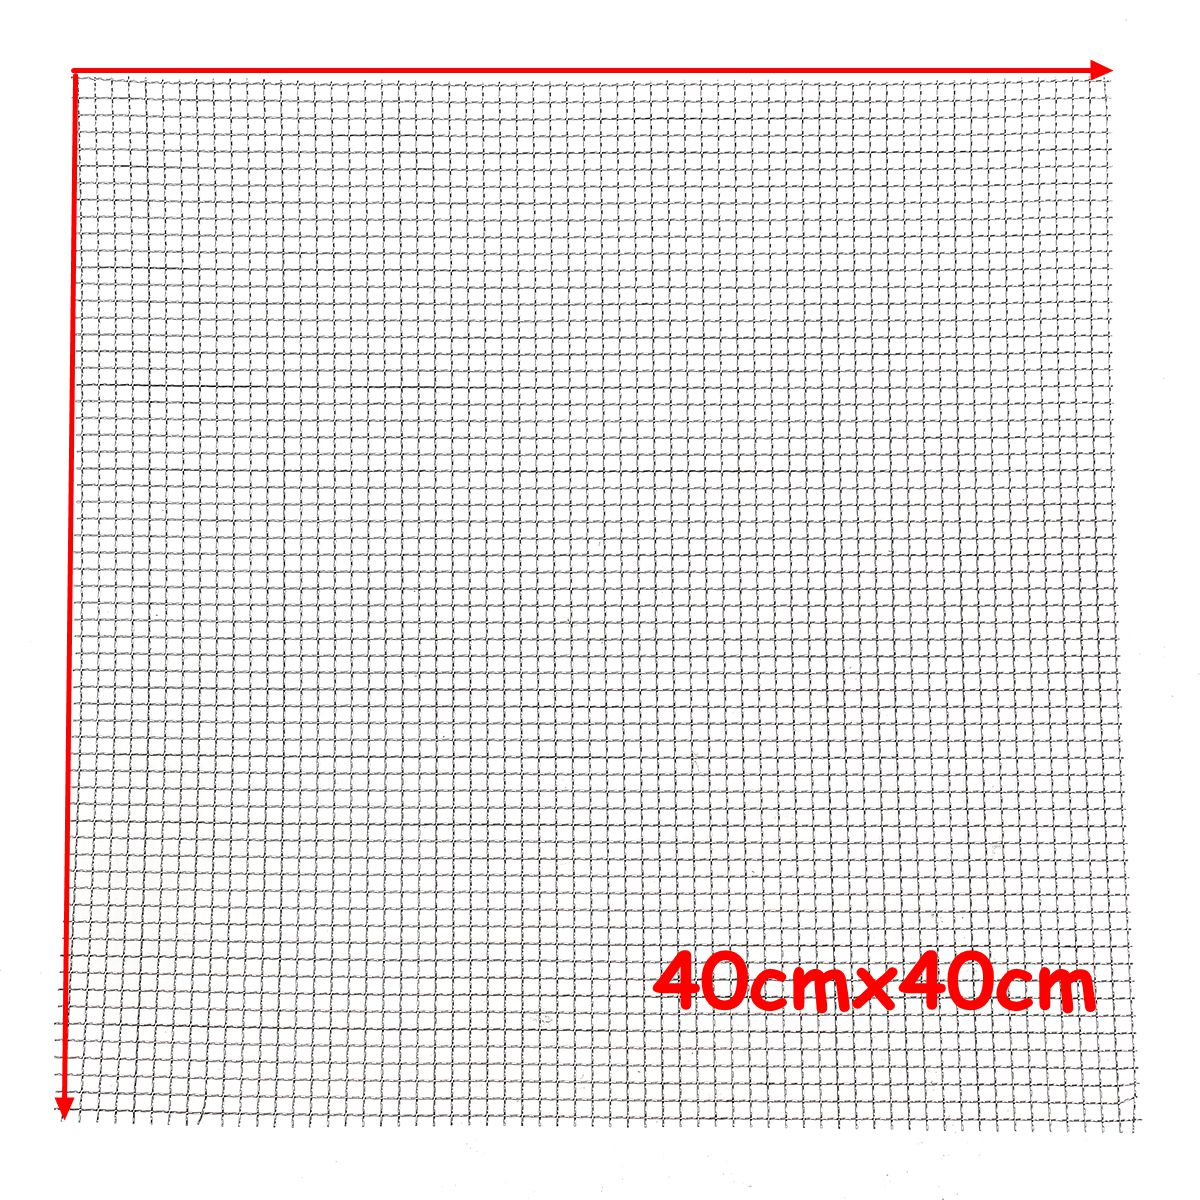 NEW Stainless Steel 304 Mesh #4 .047 Wire Cloth Screen Filter 16''x16'' 40cm x 40cm pa